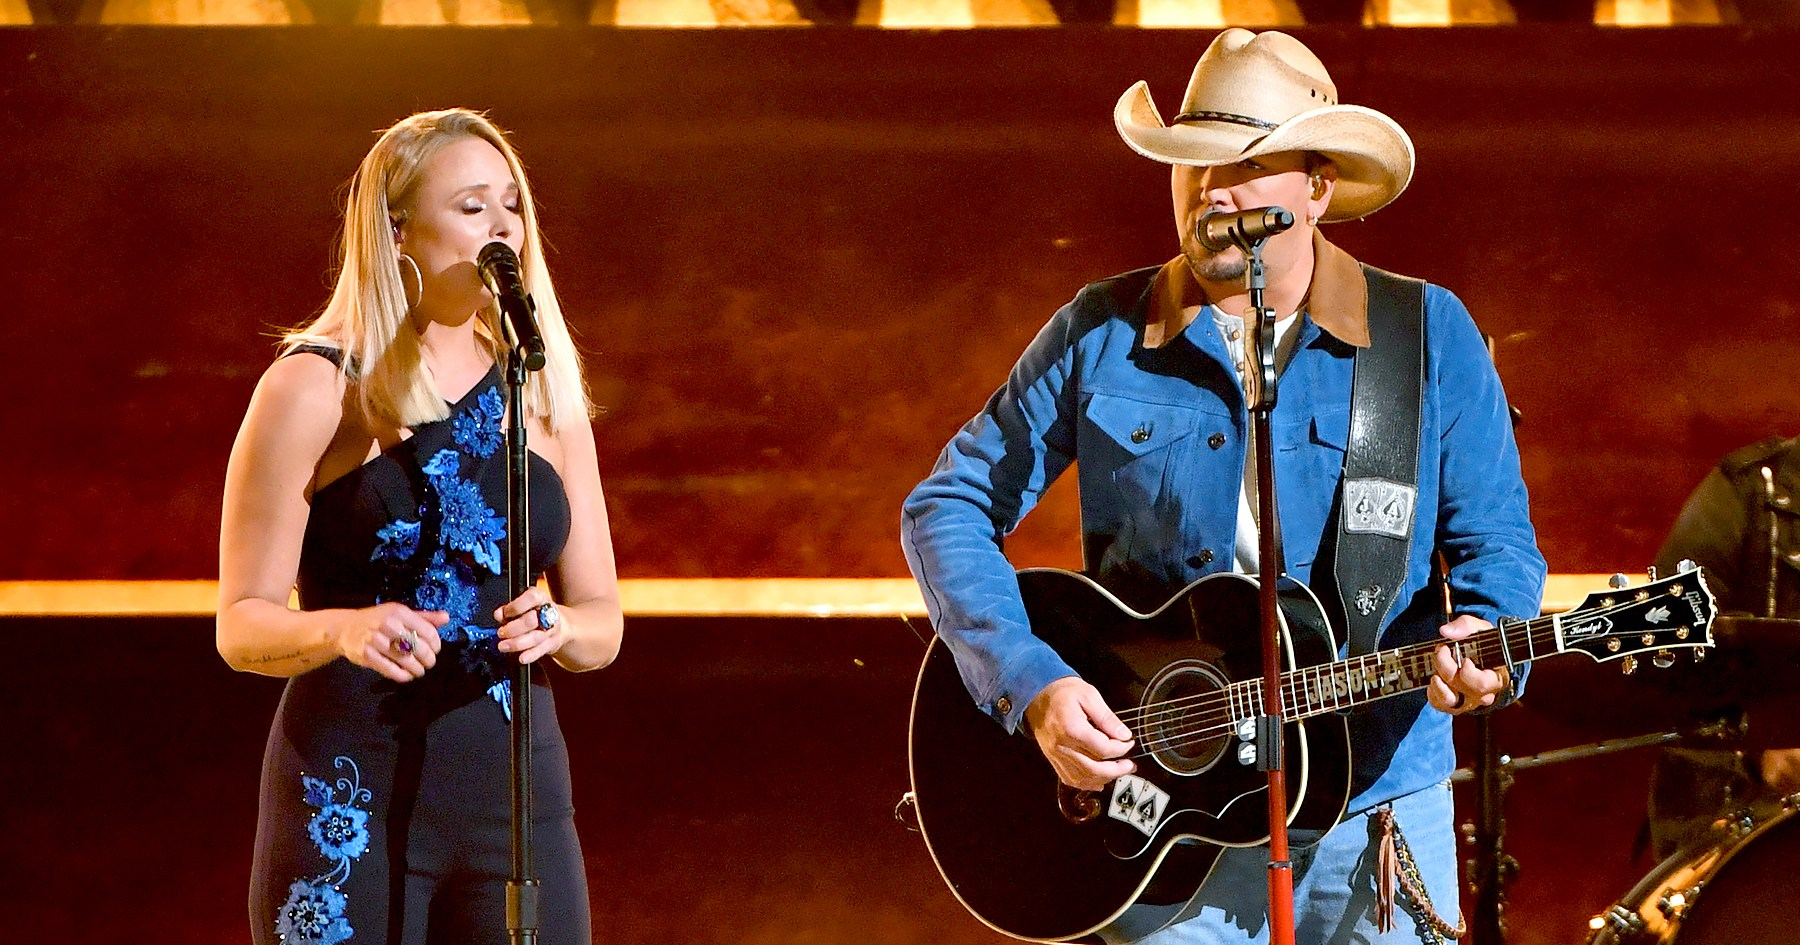 Miranda Lambert Performs With Jason Aldean at the 2018 CMAs After Slamming Sexism in Country Music